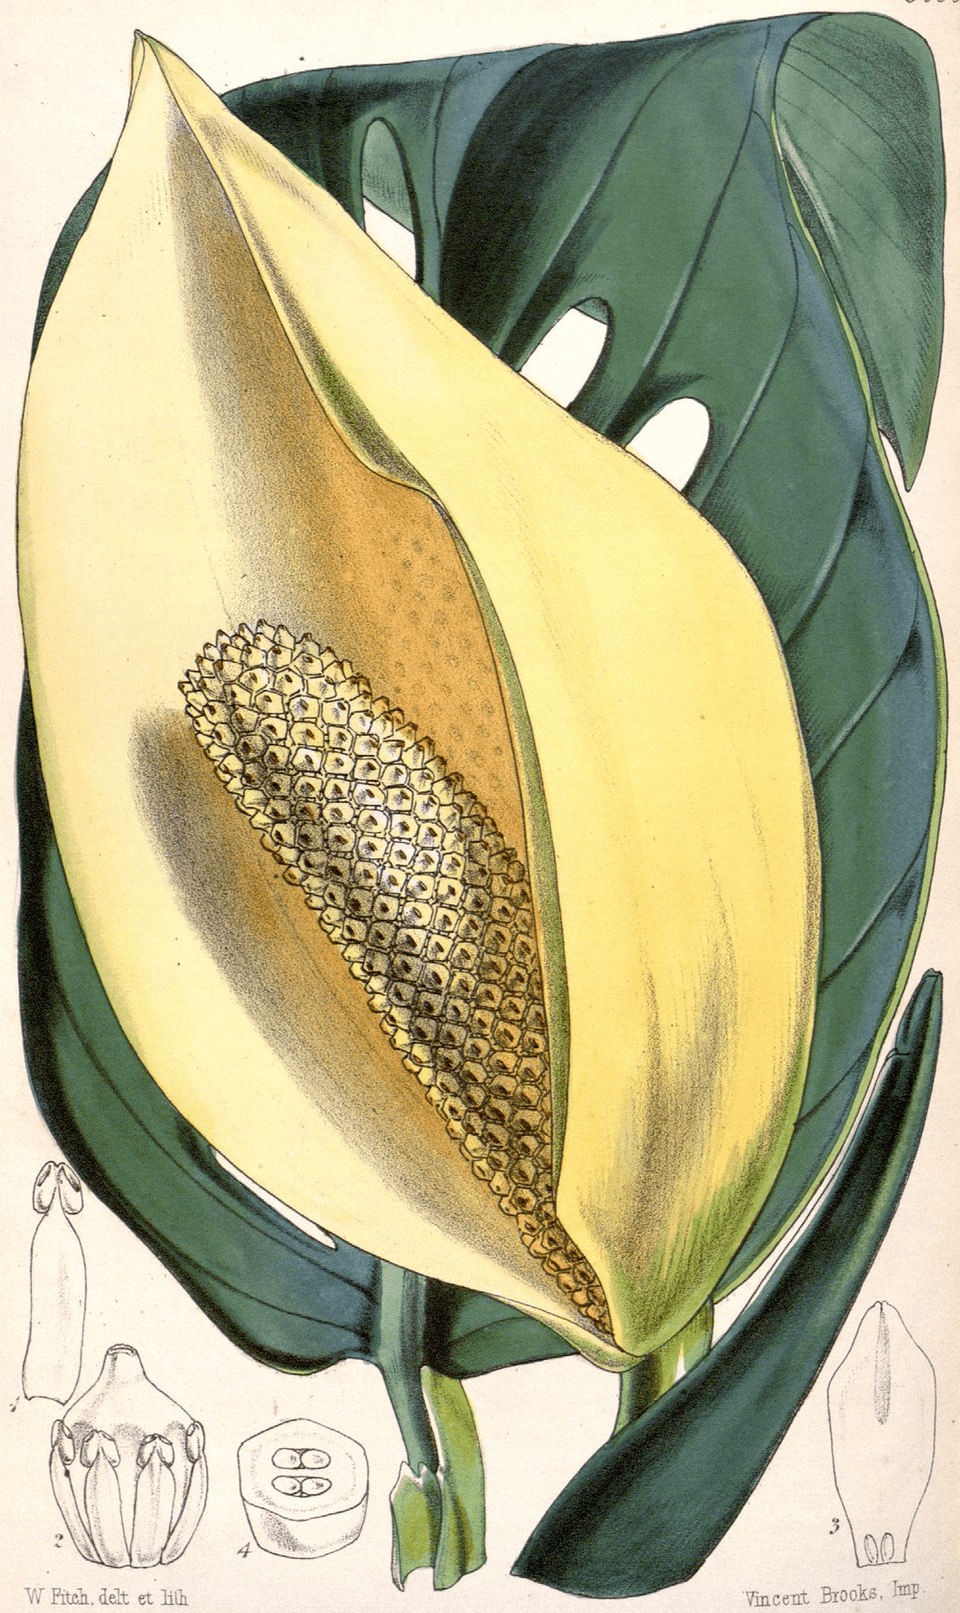 Illustration of monstera adansonii